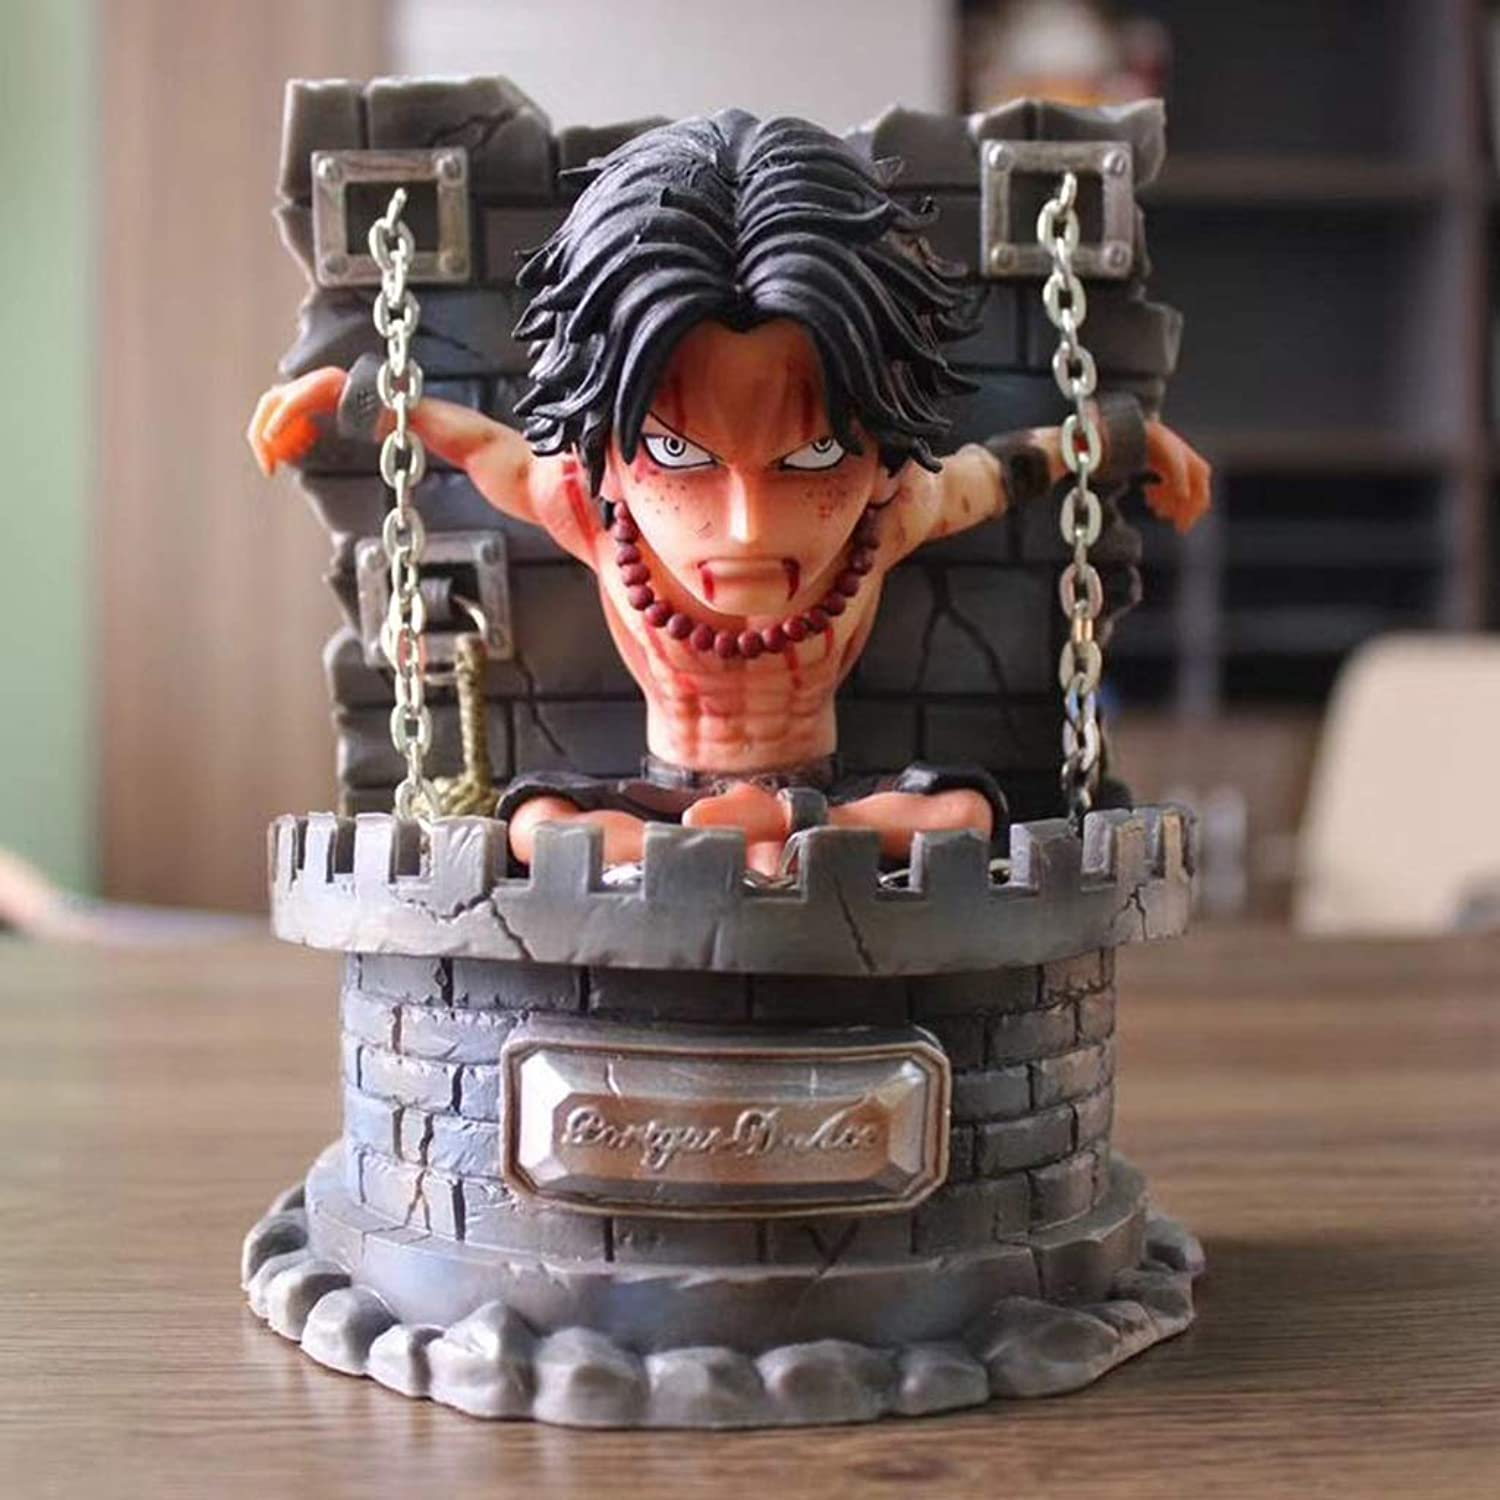 QCRLB One Piece Anime Statue Gefangener Portgas · D · Ace Spielzeug Modell PVC Anime Dekoration Statische Statue Crafts Collection -6.2in Spielzeugmodell